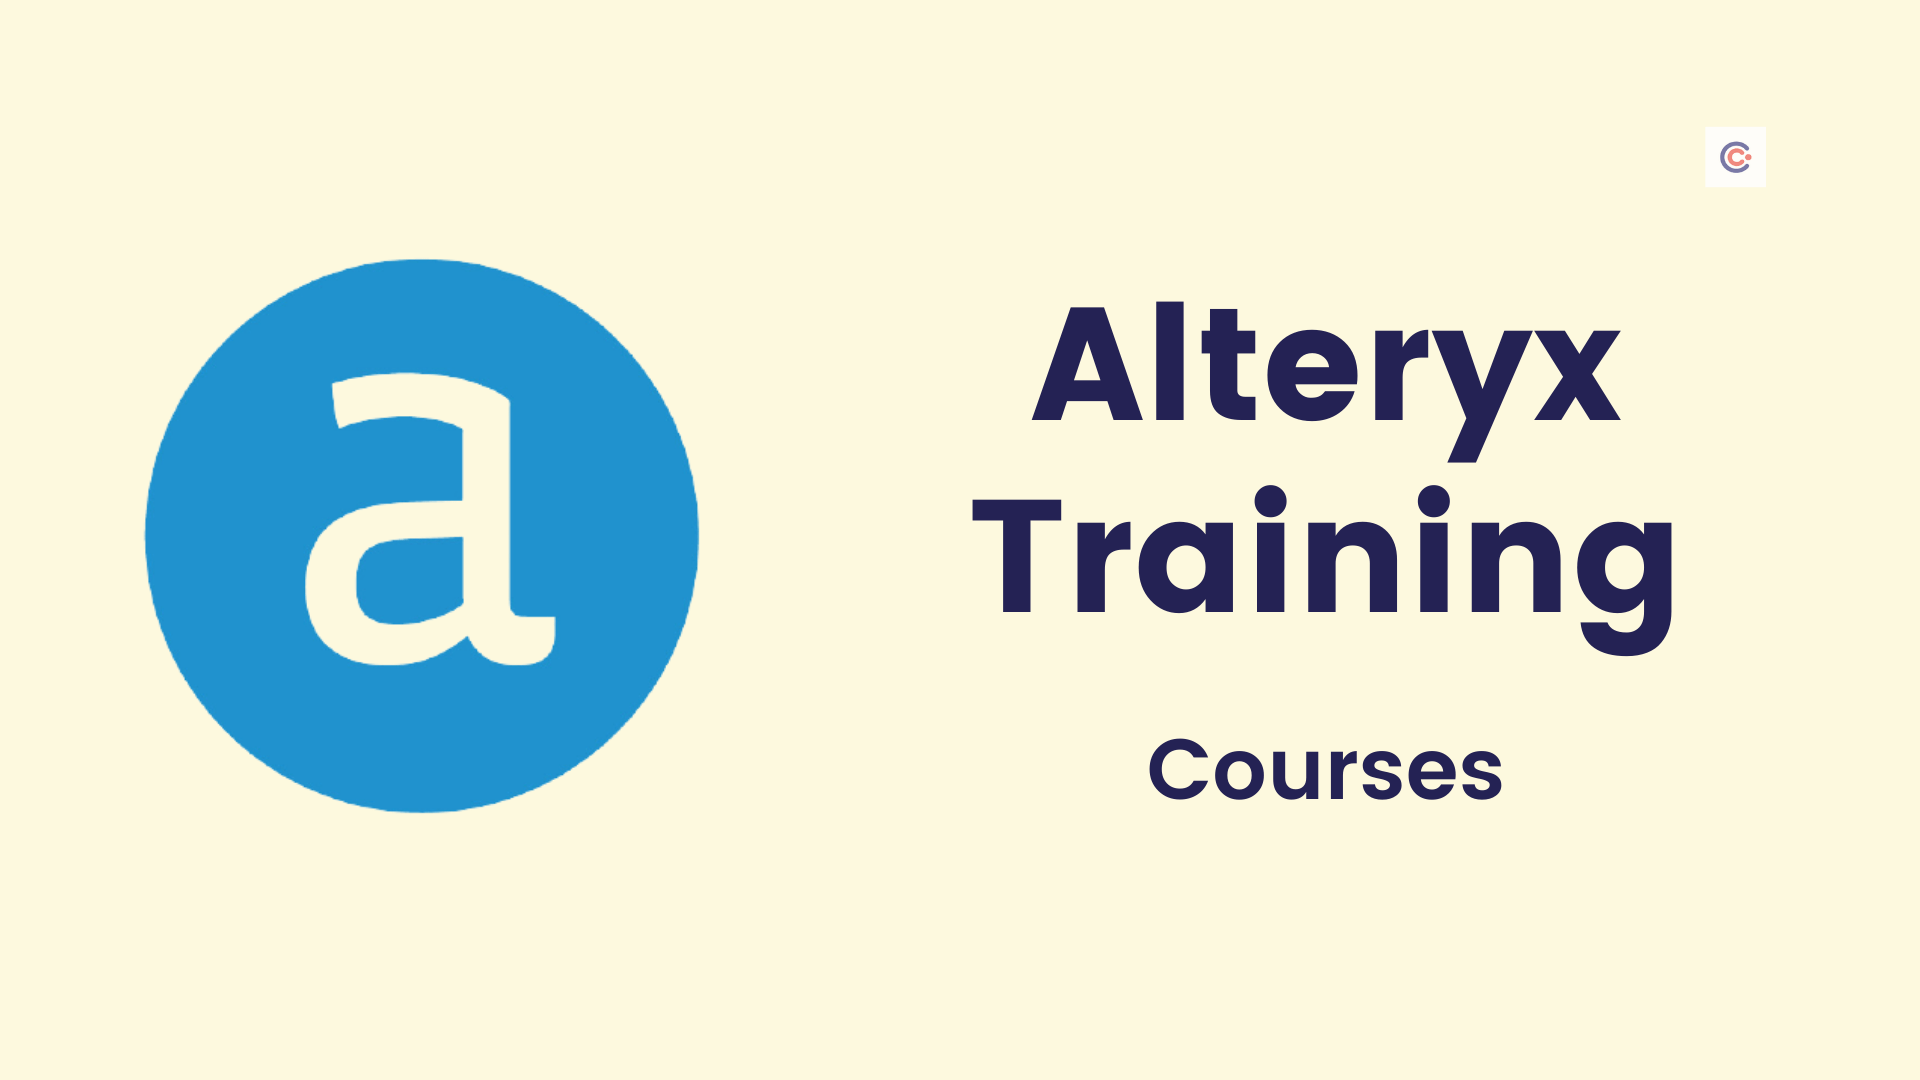 5 Best Alteryx Training Courses - Learn Alteryx Online